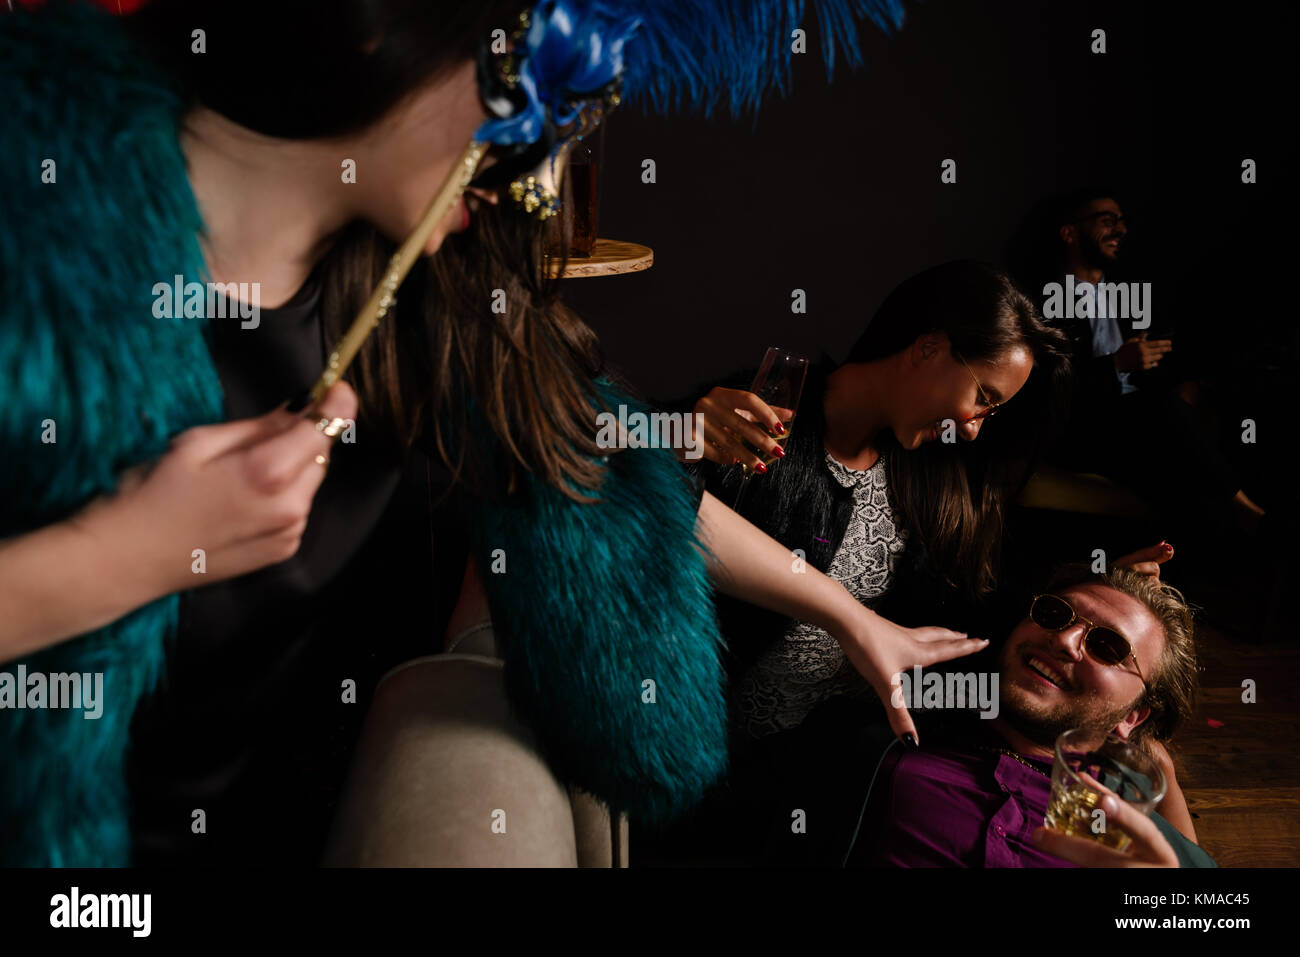 Two girls fighting over Casanova's attention at a party - Stock Image